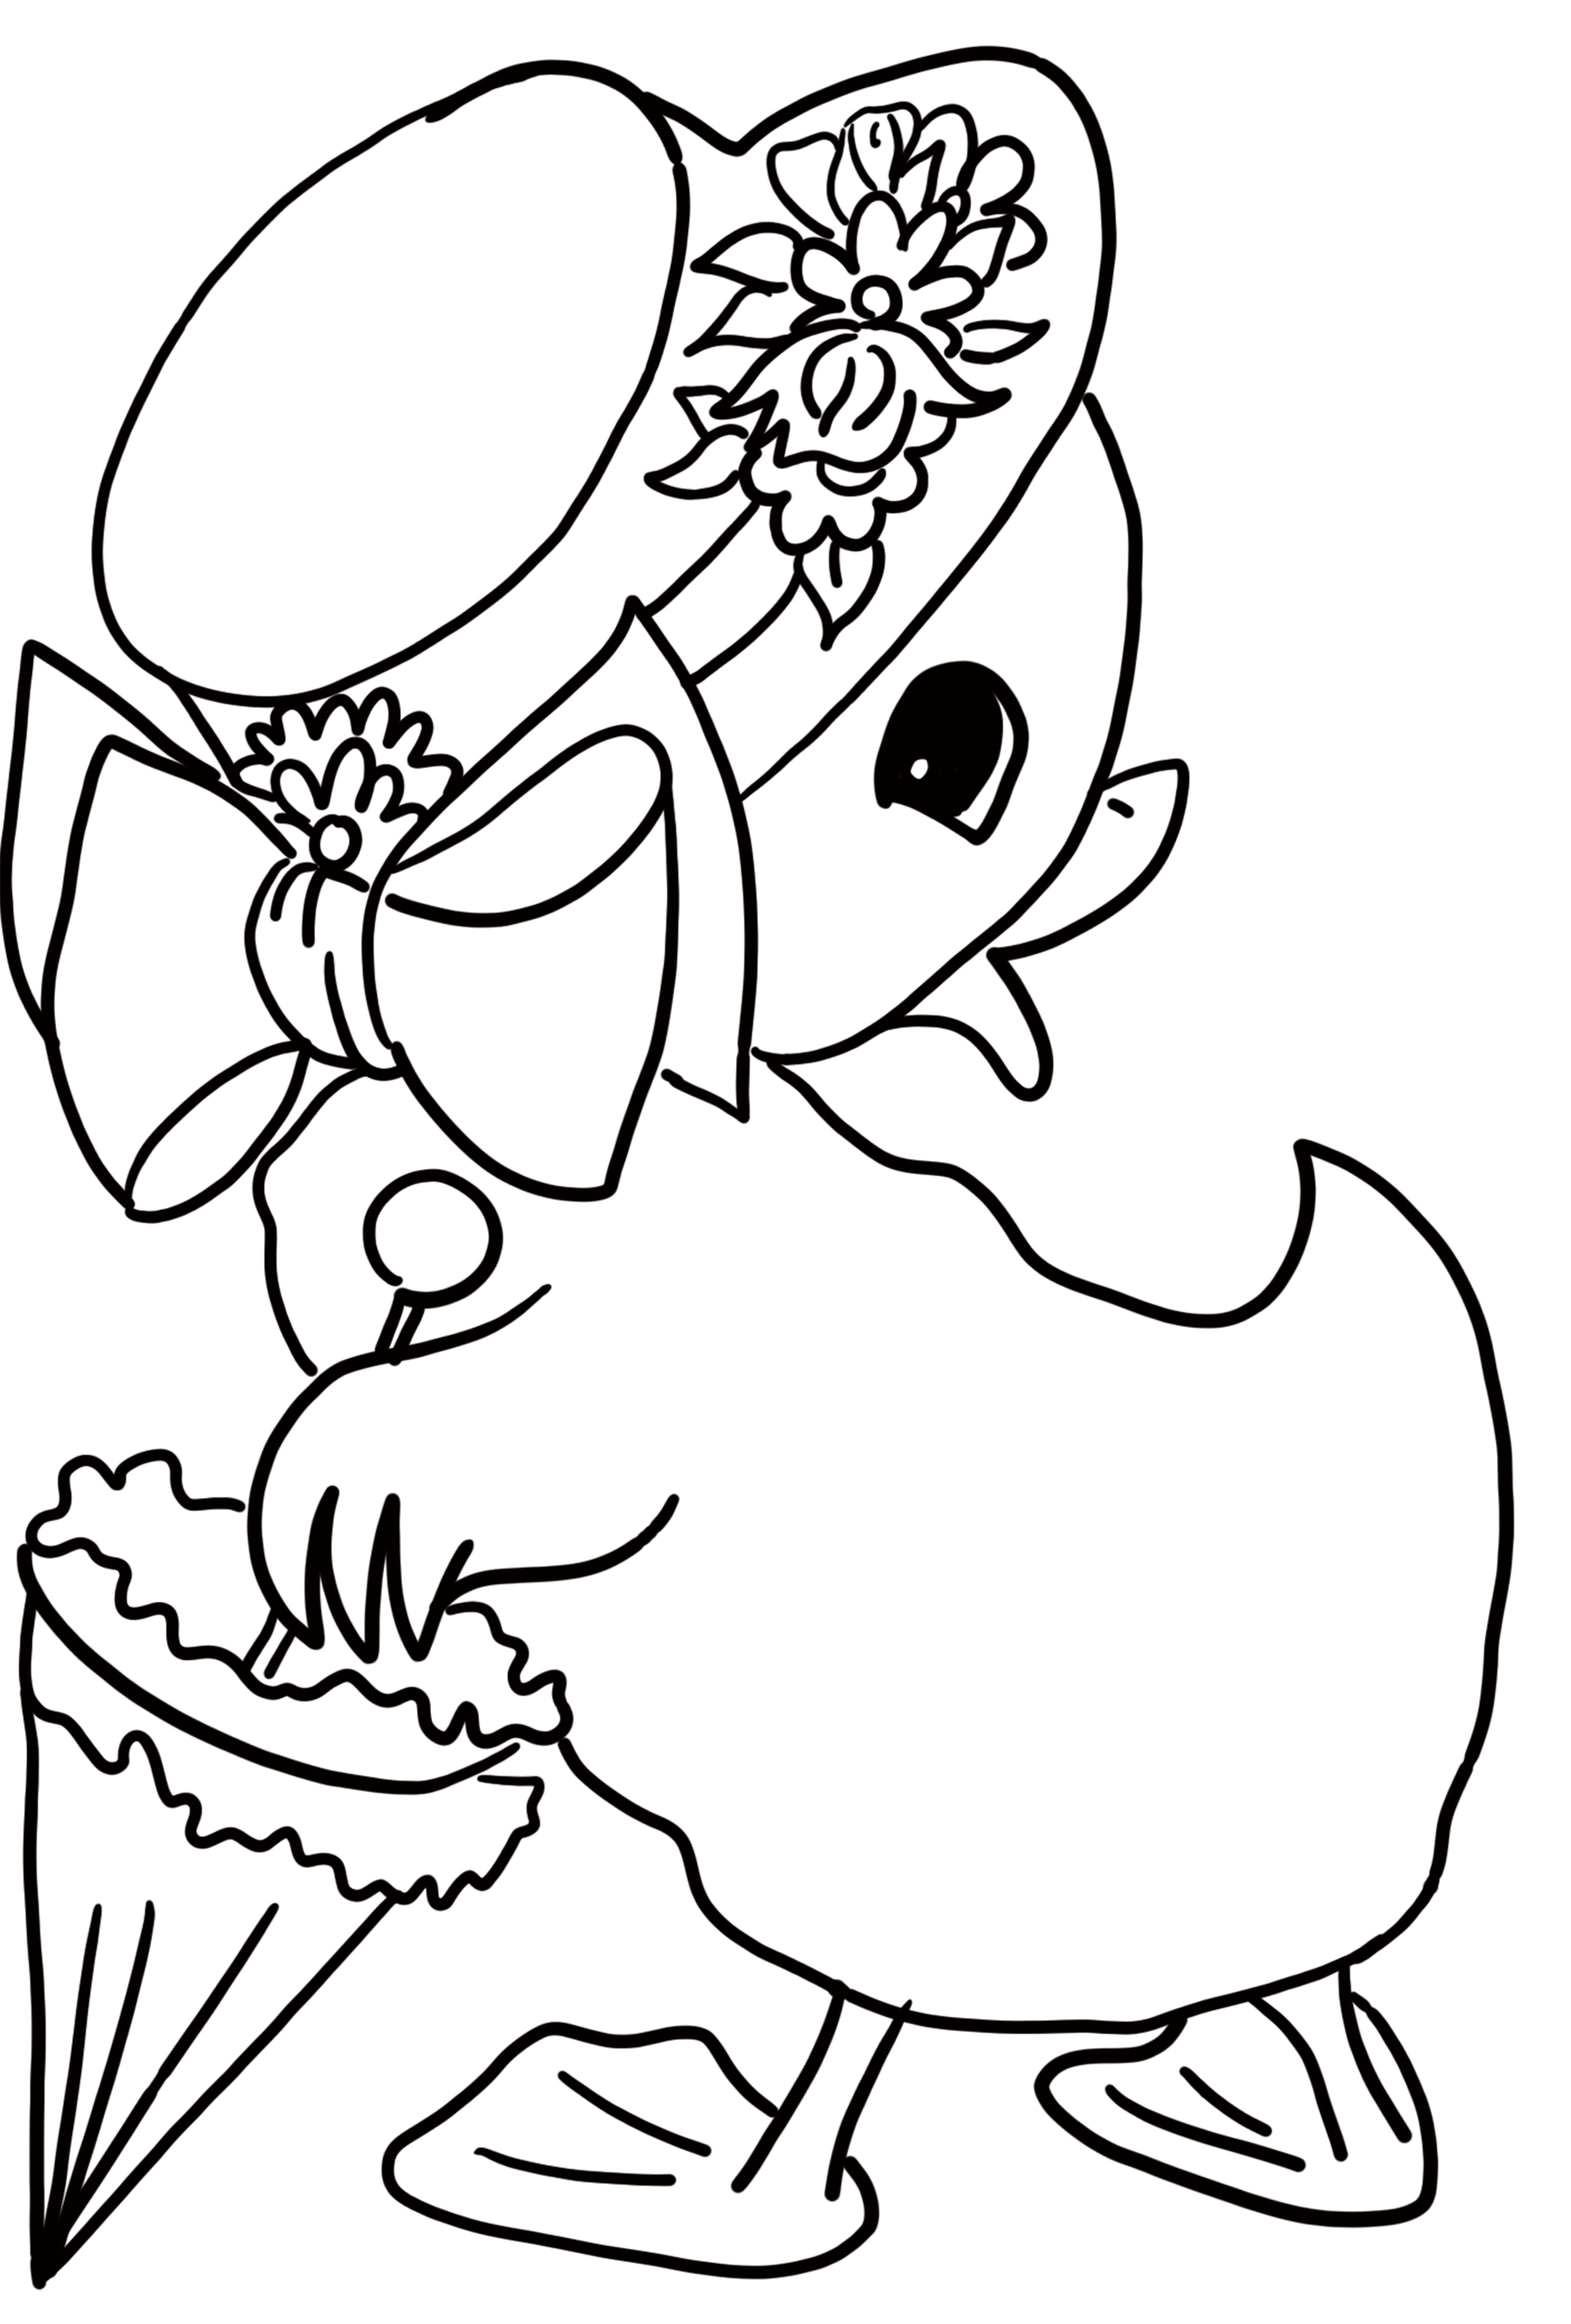 Free Easter Coloring Pages for Kids: High Printing Quality